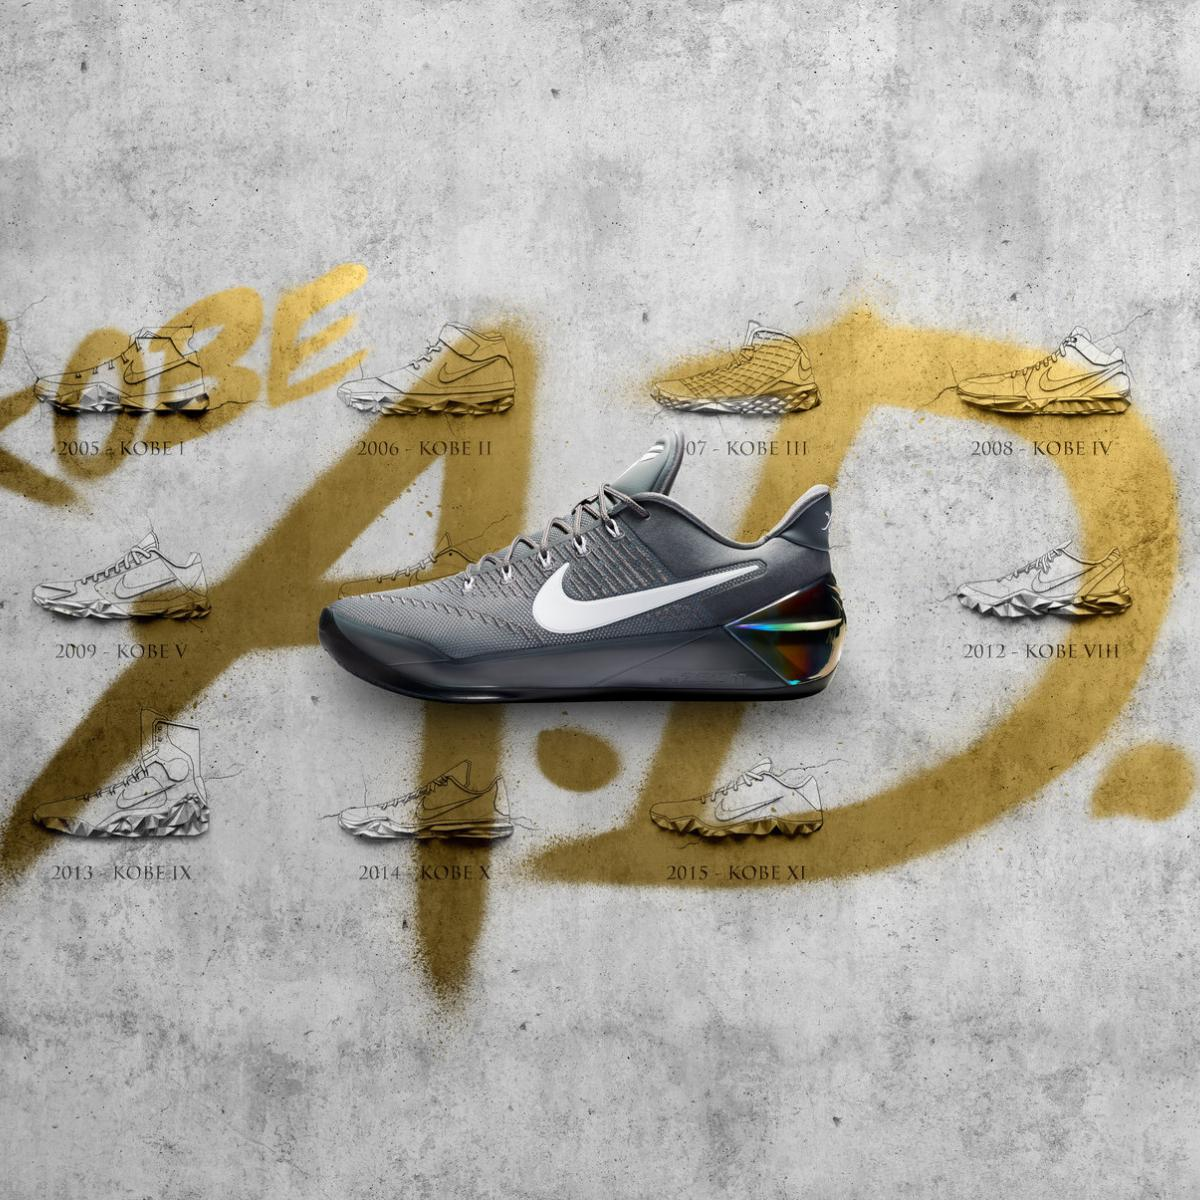 Nike Introduces the Nike Kobe A.D., Kobe Bryant's 1st Post-Retirement Sneaker